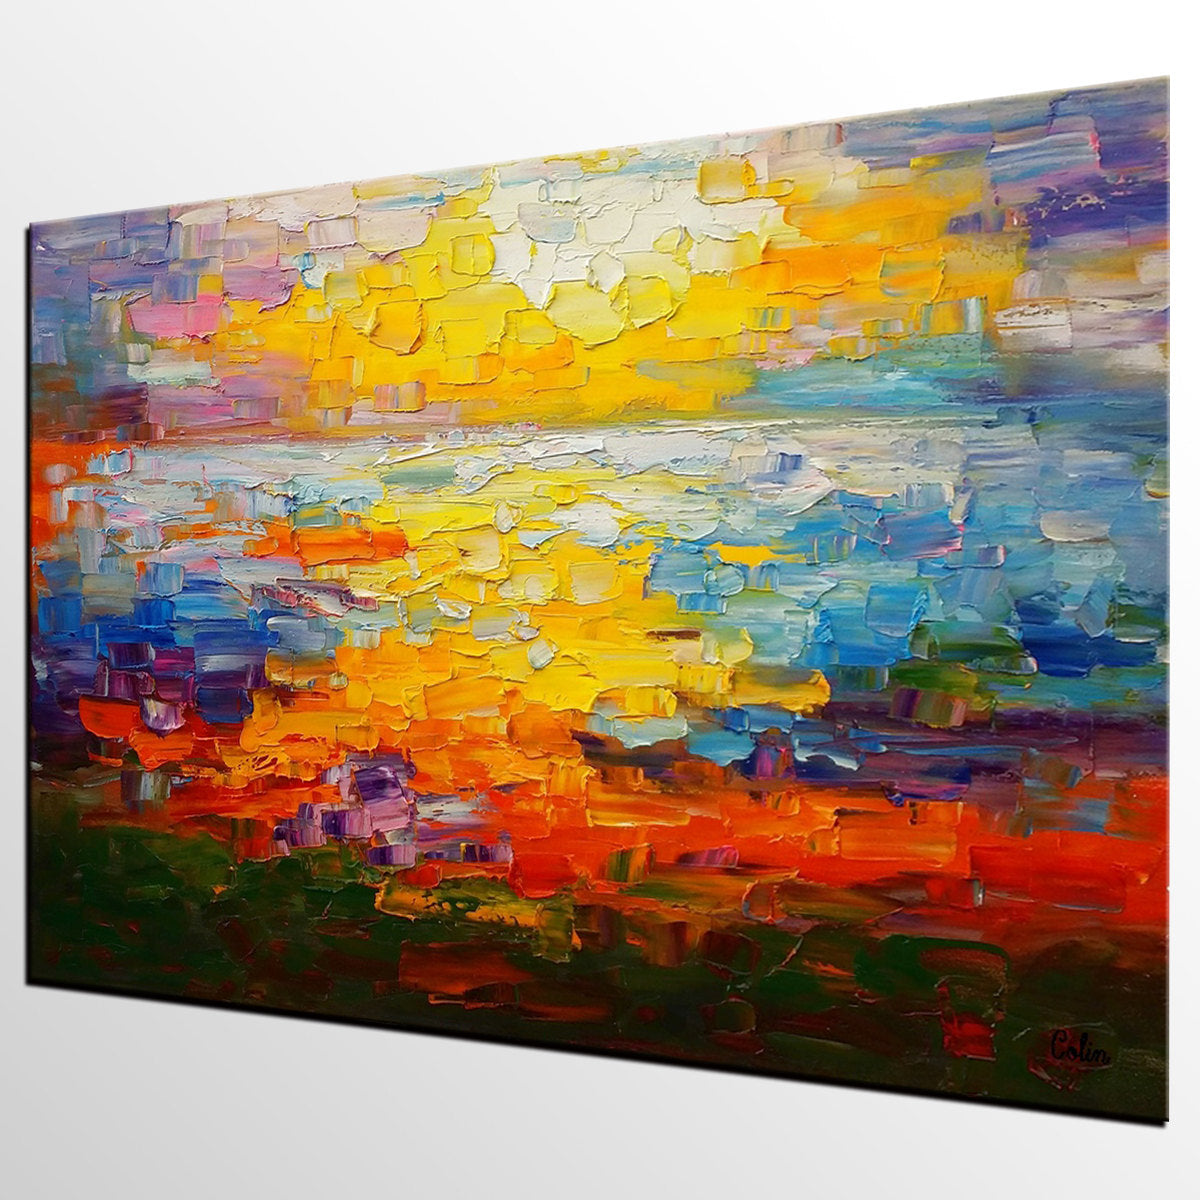 Large Canvas Art, Abstract Painting, Impasto Art, Canvas Oil Painting